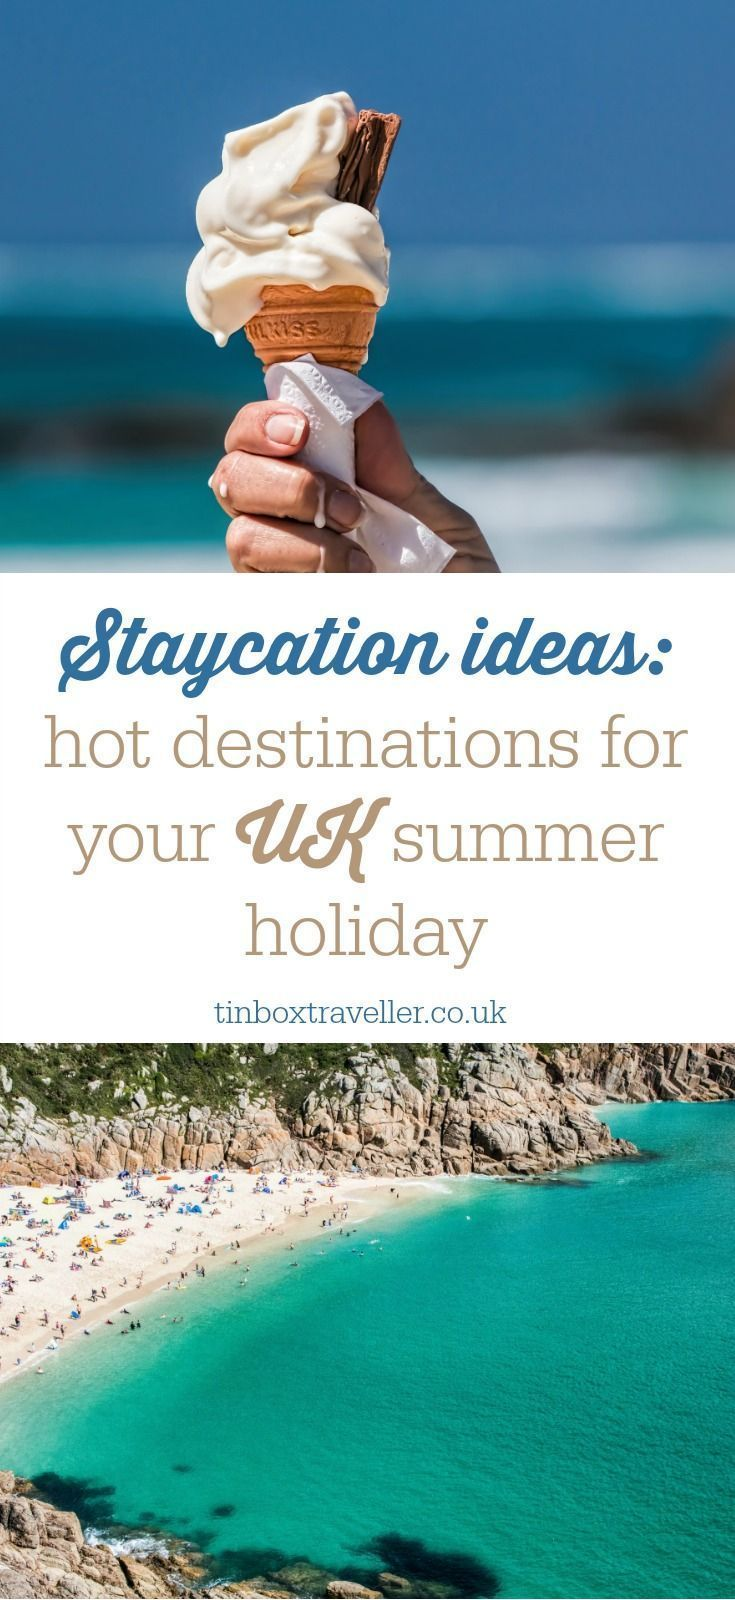 Staycation ideas: hot destinations for your UK summer holiday – Parenting & Children